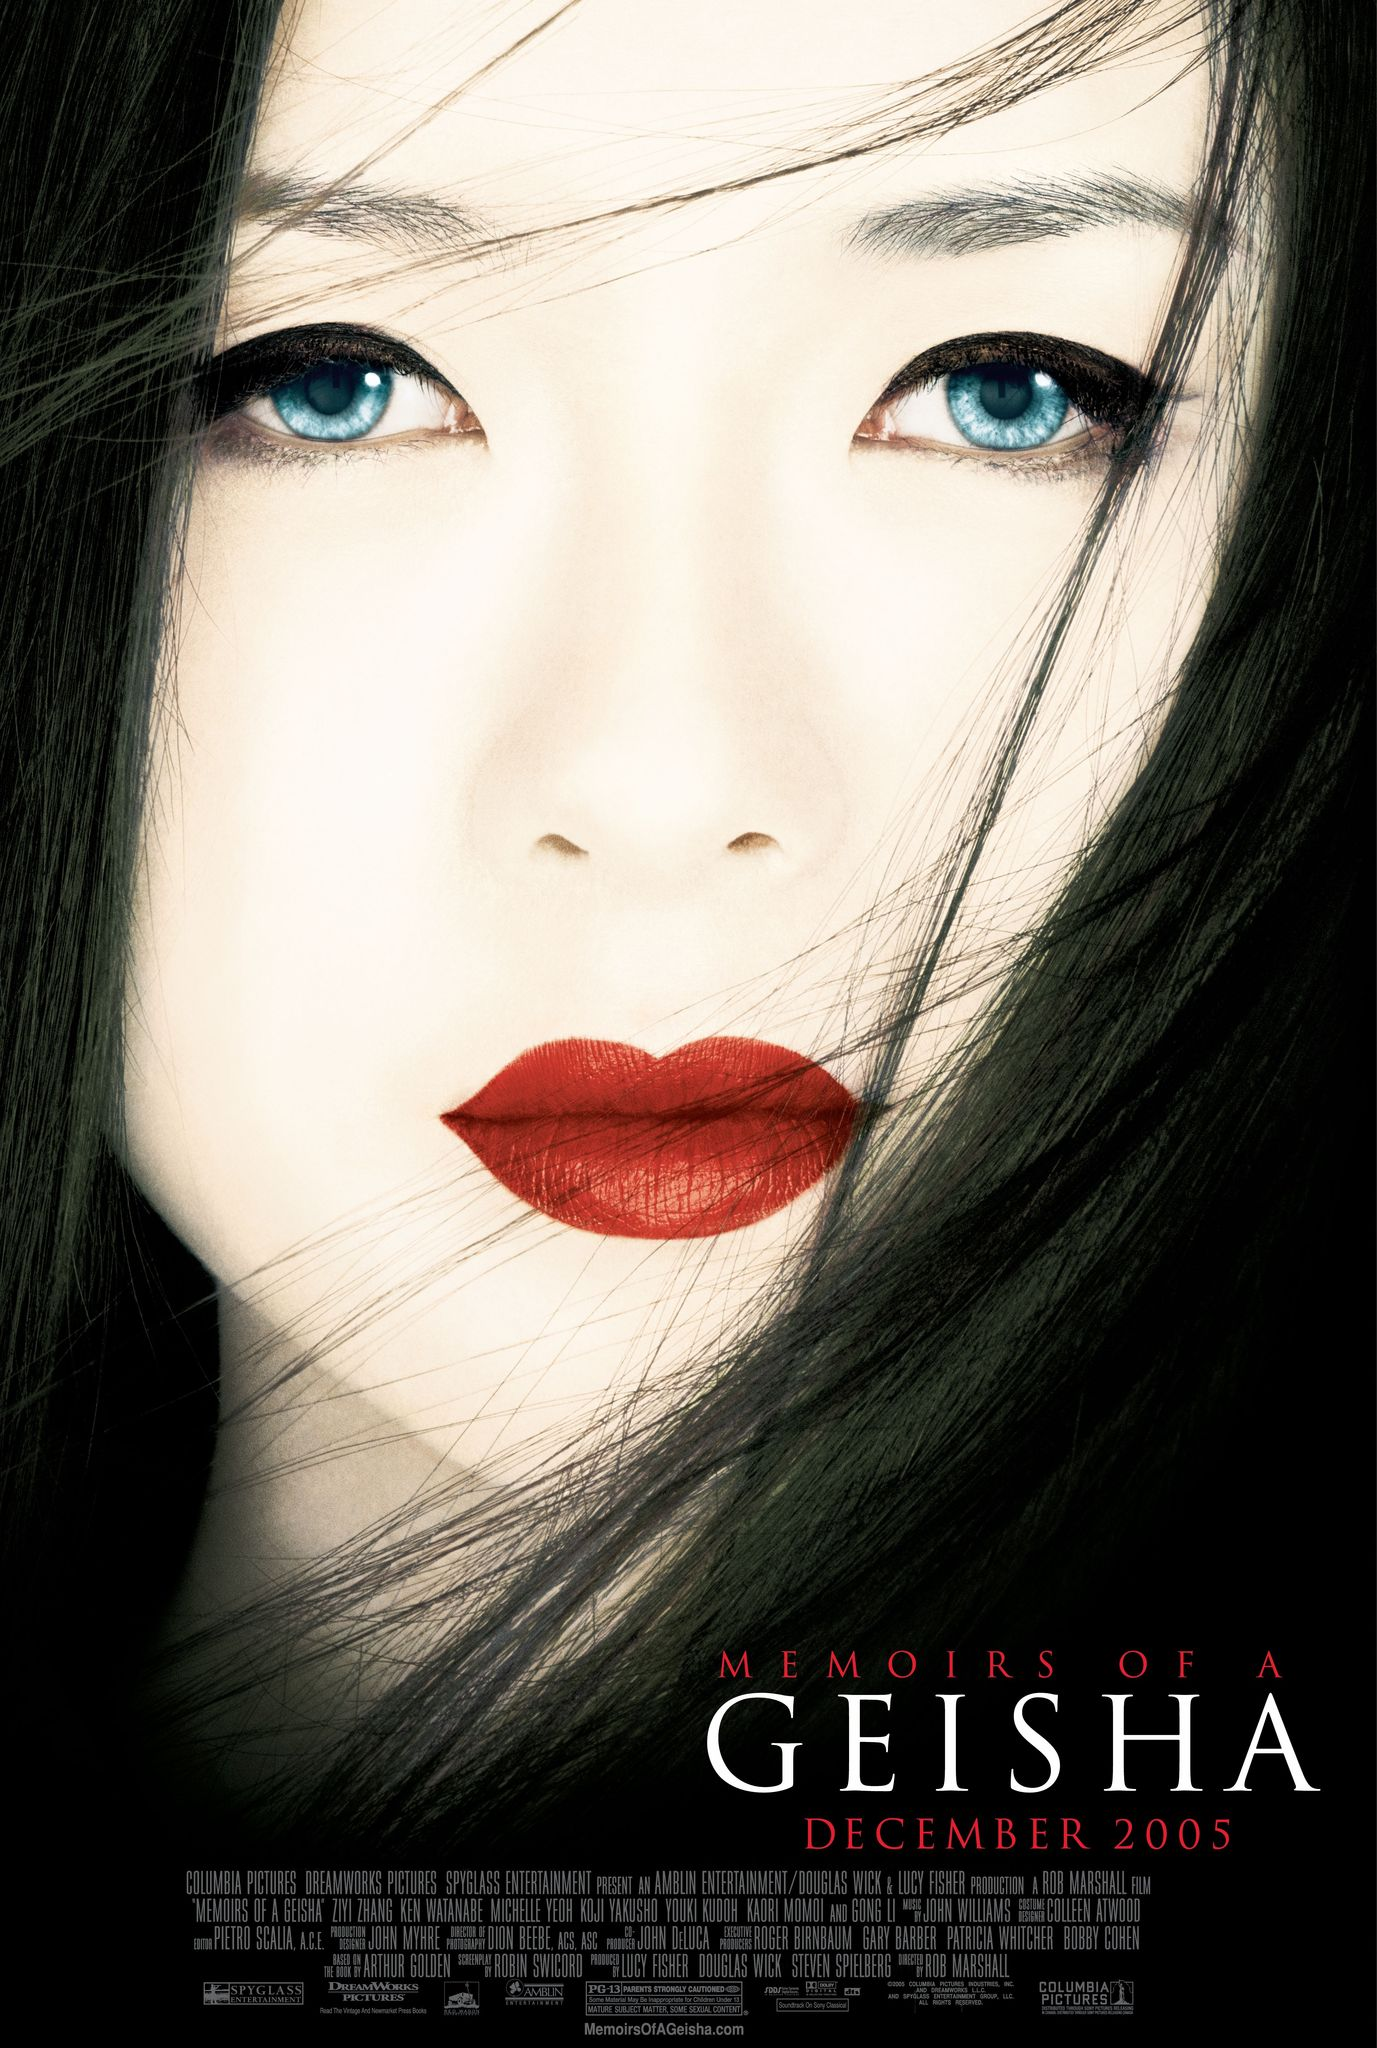 Memoirs of a Geisha (2005) - Directed by: Rob MarshallStarring: Ziyi Zhang, Michelle Yeoh, Ken Wantanabe, Koji YakushoSuzuka Ohgo, Samantha Futerman, Li Gong, Tsai Chin, Kaori MomoiRated: PG-13 for Mature Subject Matter and Some Sexual ContentRunning Time: 2 h 25 mTMM Score: 3.5 stars out of 5STRENGTHS: Production and Costume Design, Pacing, Story, Cinematography, MusicWEAKNESSES: Themes, Mischaracterization of Characters, It's in English (?)